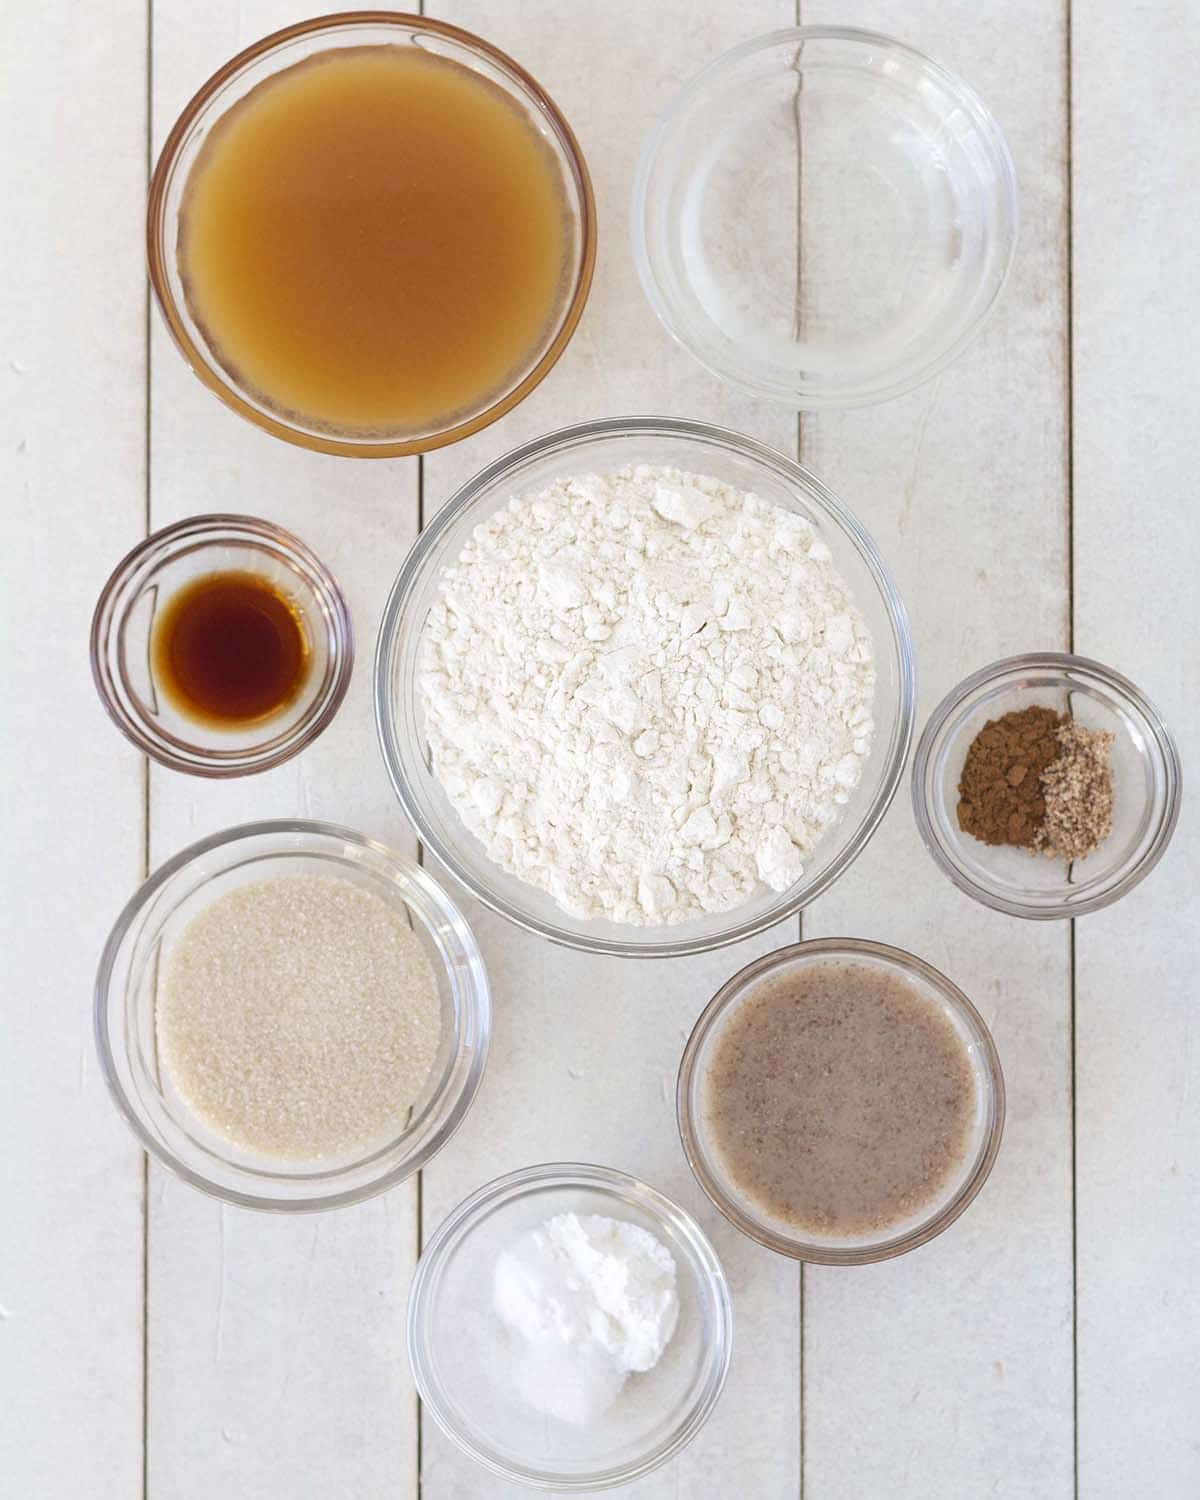 Image showing all the ingredients needed to make baked gluten-free apple cider donuts, all ingredients are in separate bowls.